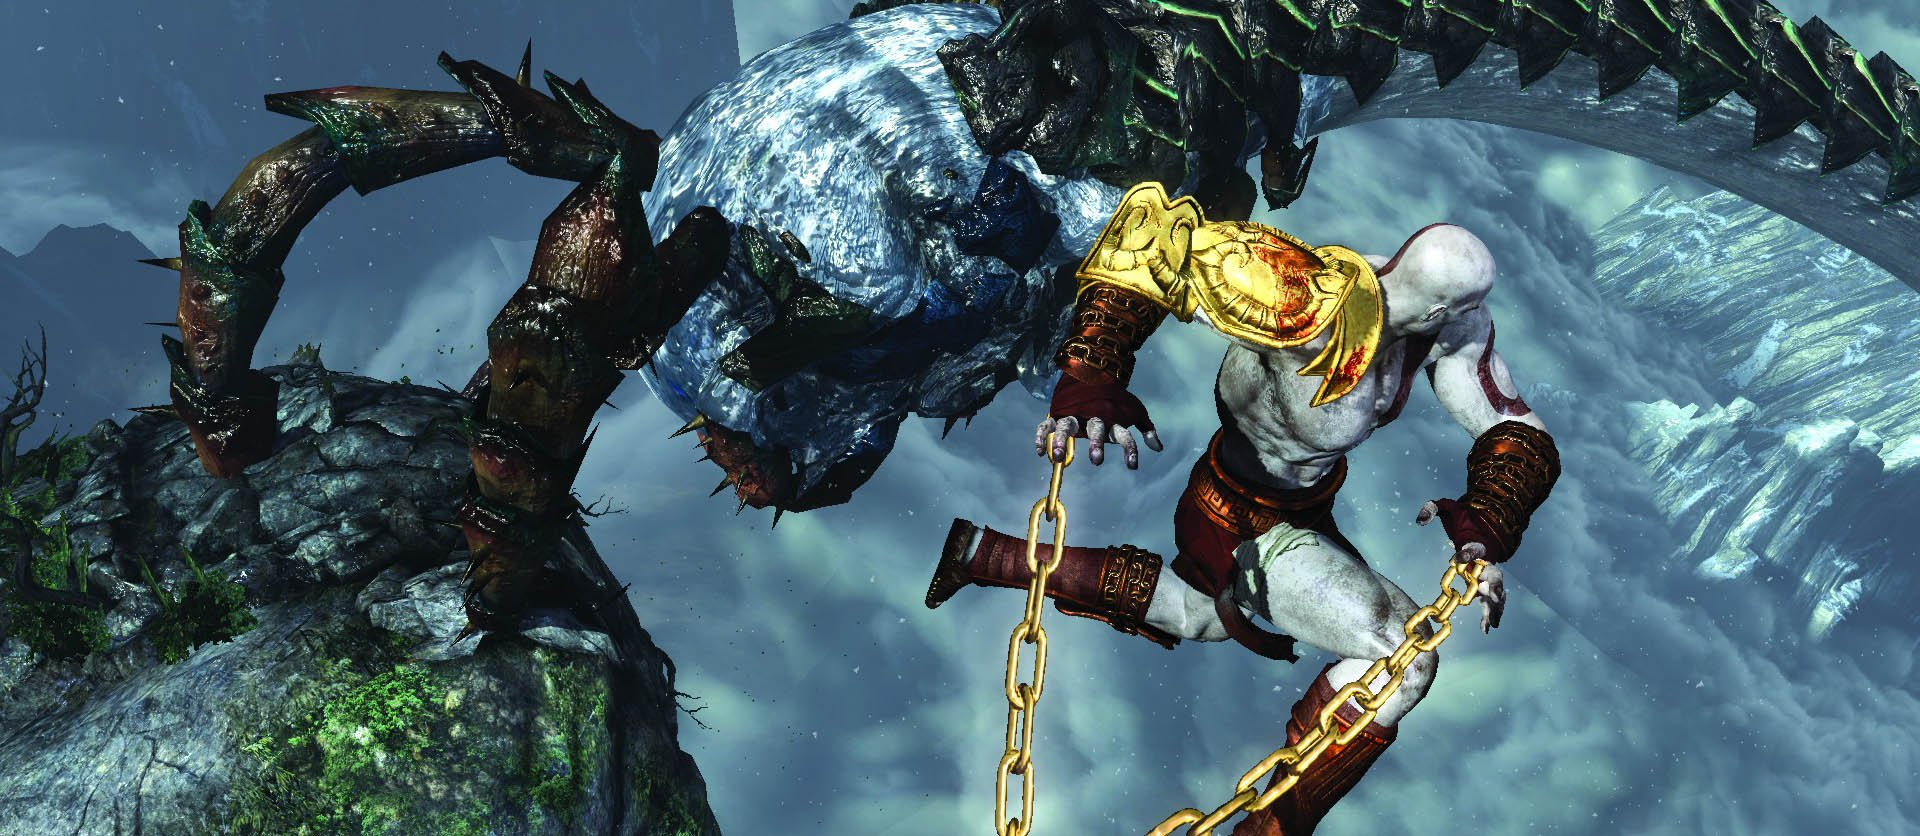 Review: God of War III Remastered - Slant Magazine